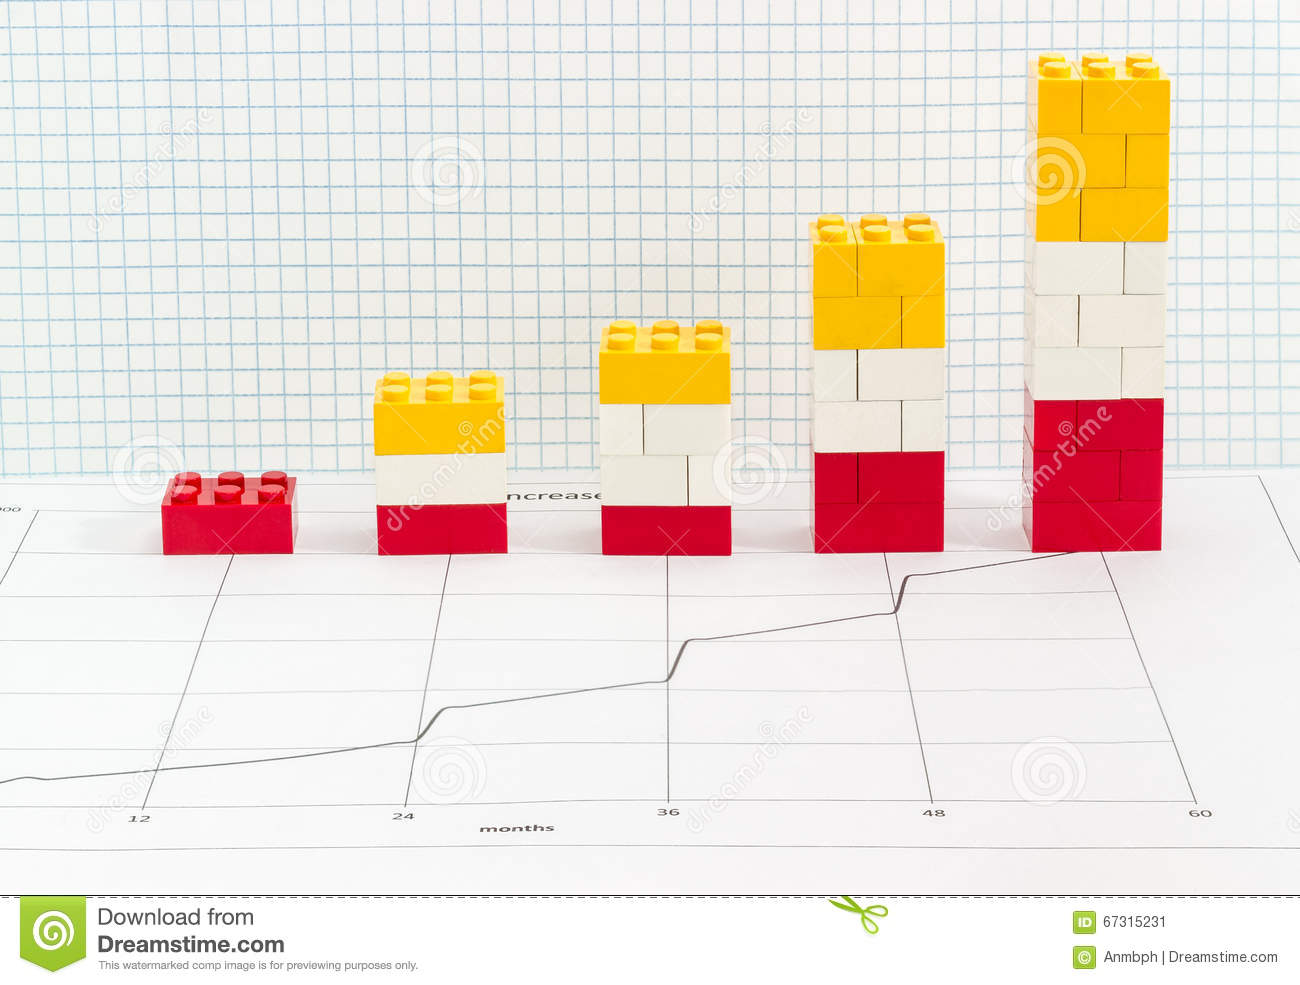 Worksheet Bar Chart For Children stacked bar chart made from parts childrens designer stock image royalty free photo download childrens